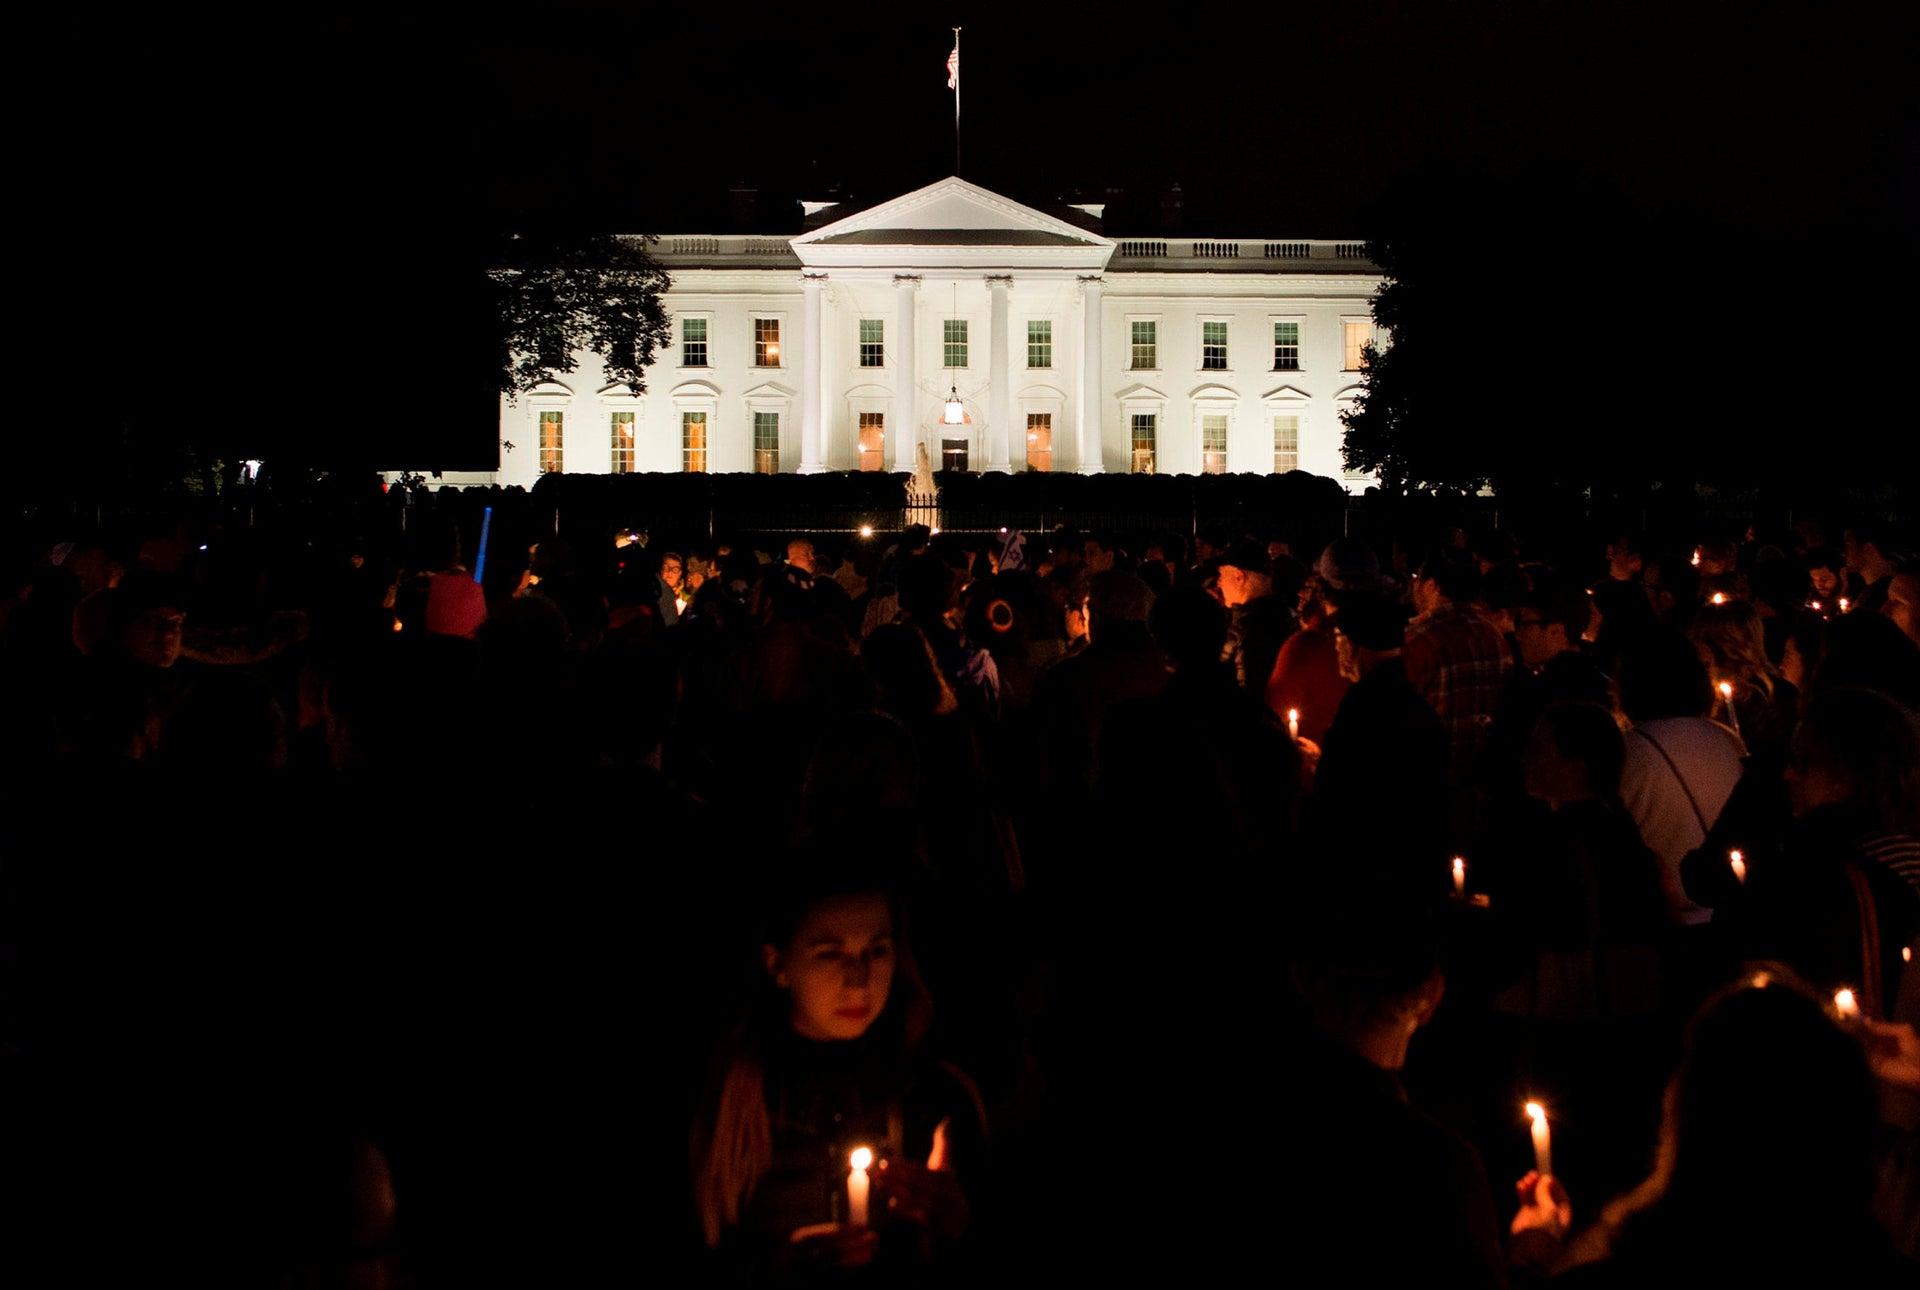 Vigil in front of the White House in memory of those killed in Pittsburgh synagogue shooting.